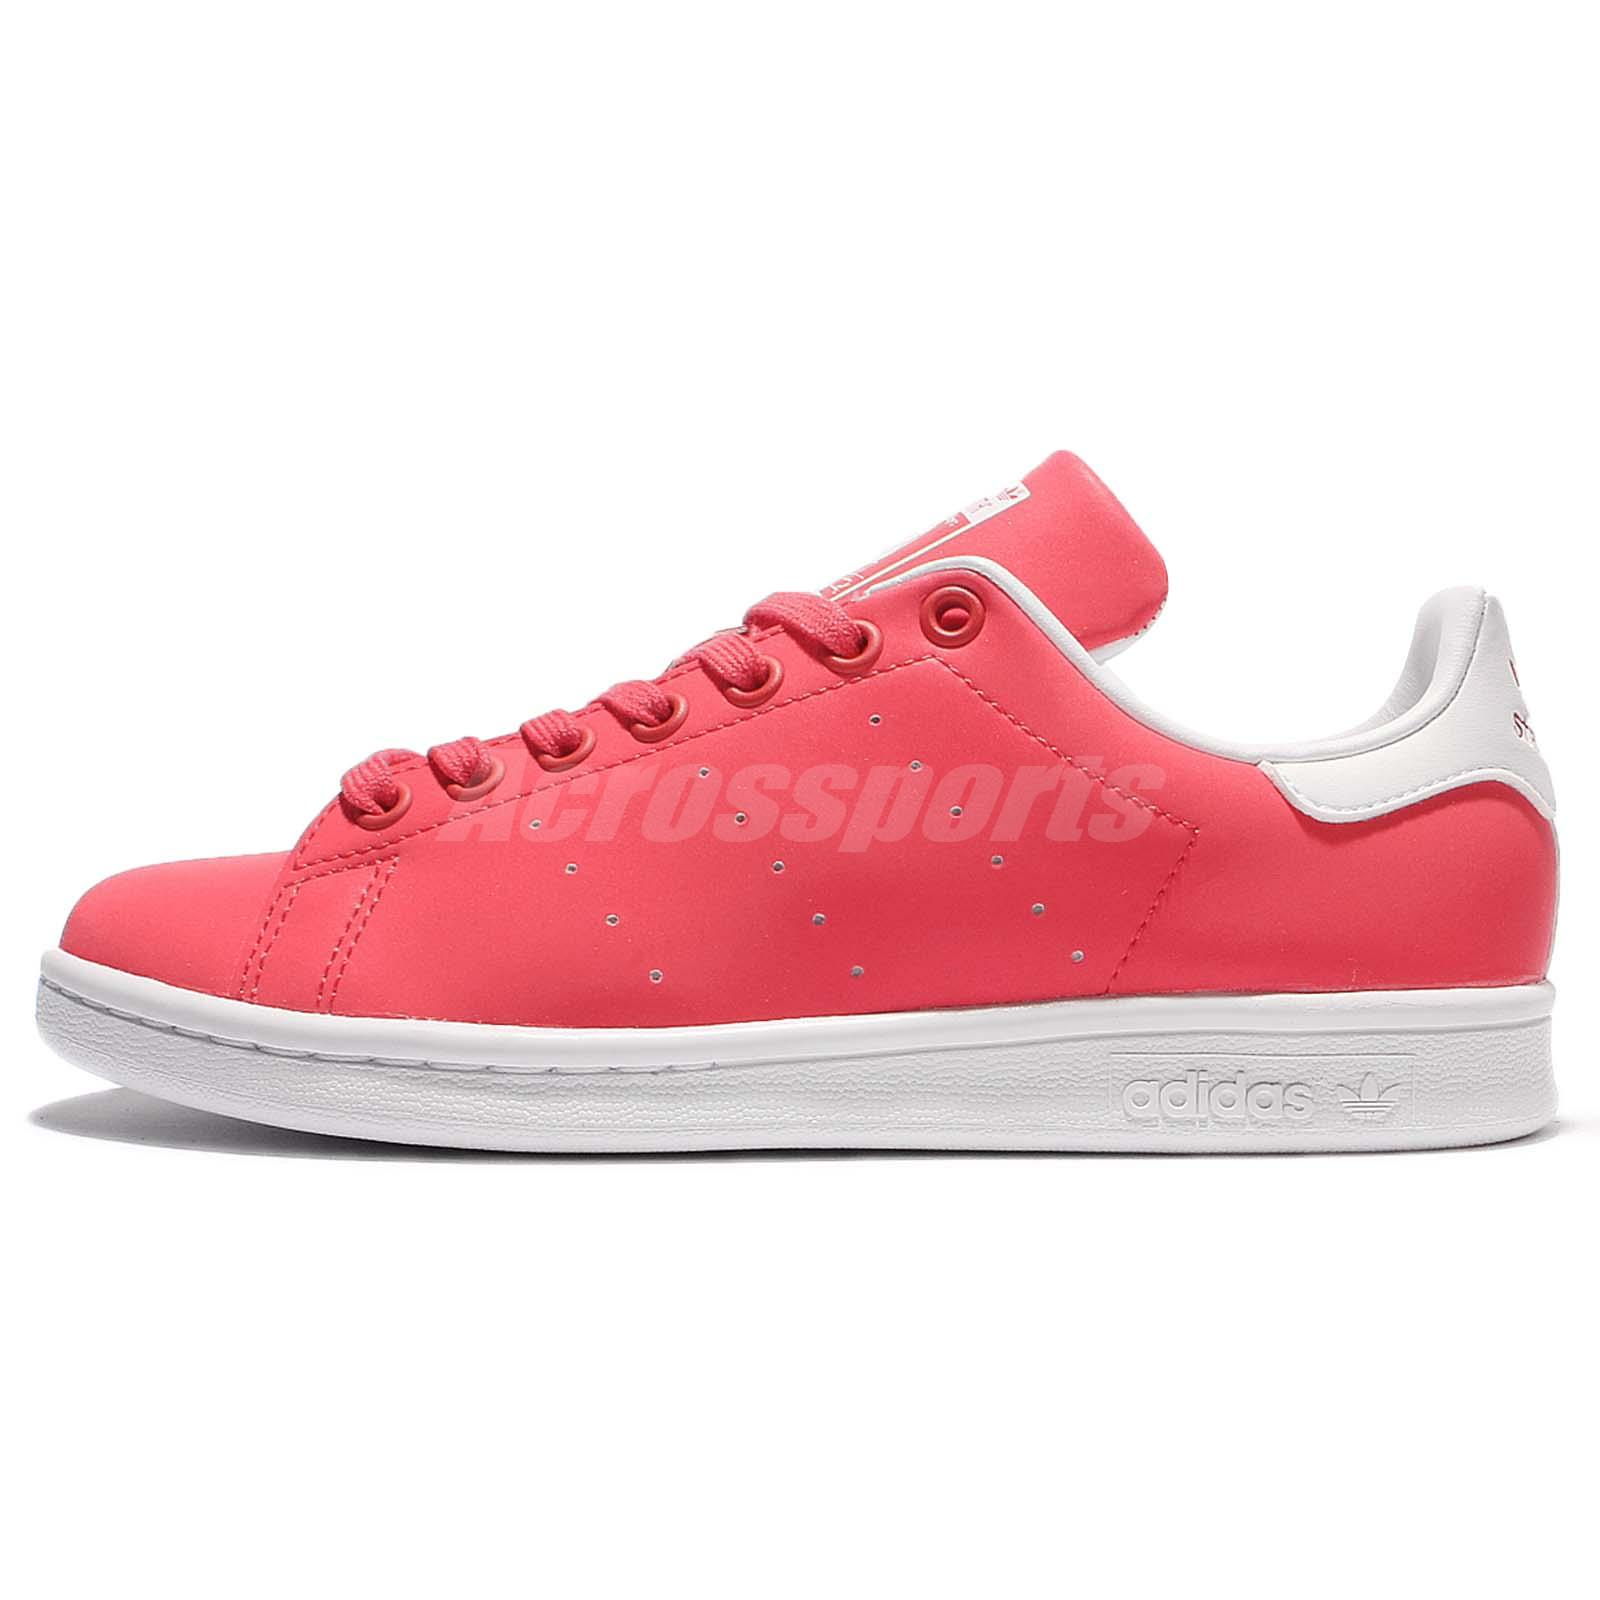 adidas Originals Stan Smith W Pink White Reflective Womens Casual Shoes BB5154